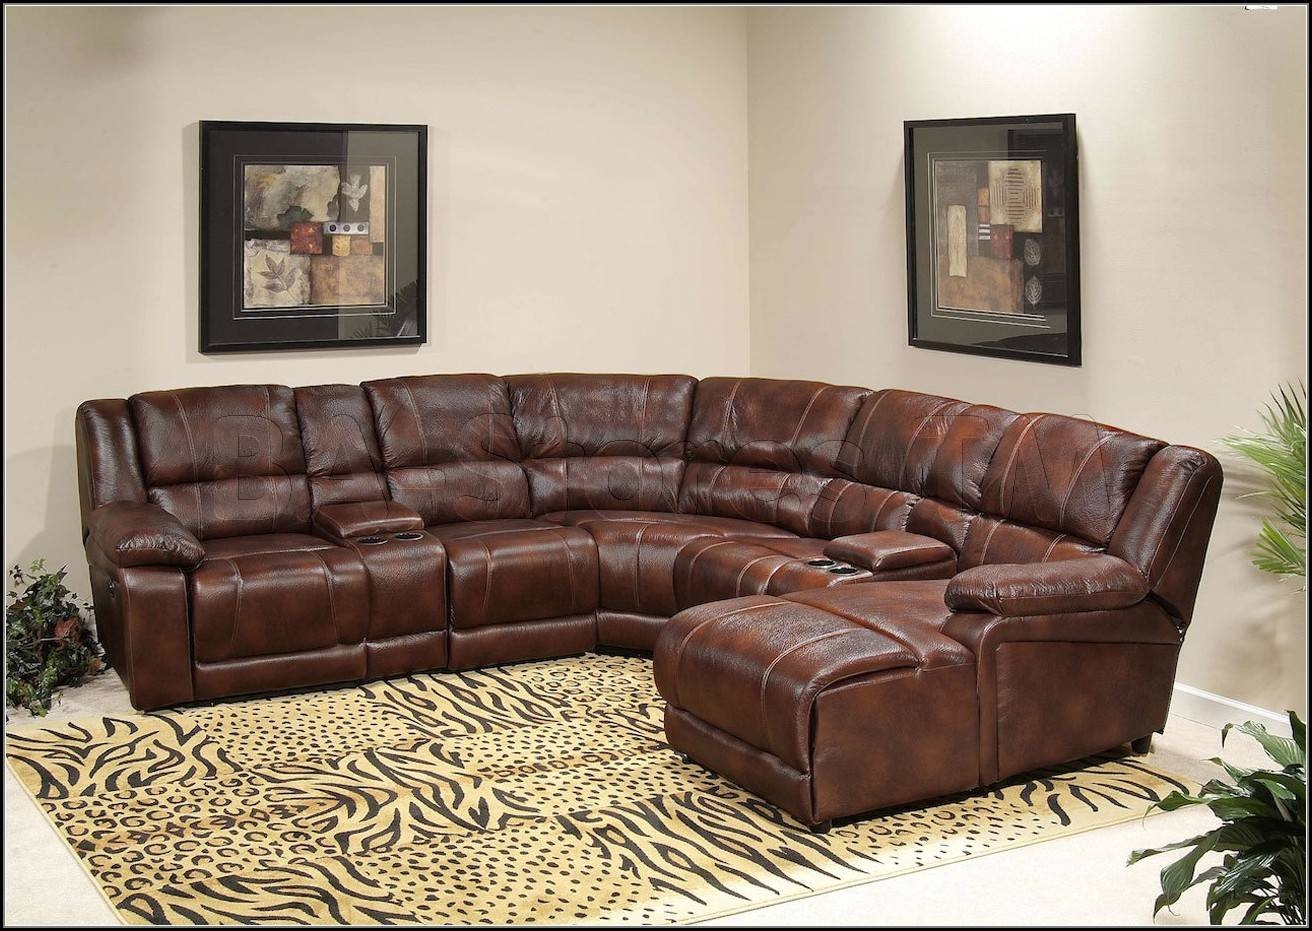 Leather Sectional Sofa With Recliners | Tehranmix Decoration throughout Sectional Sofa Recliners (Image 17 of 30)